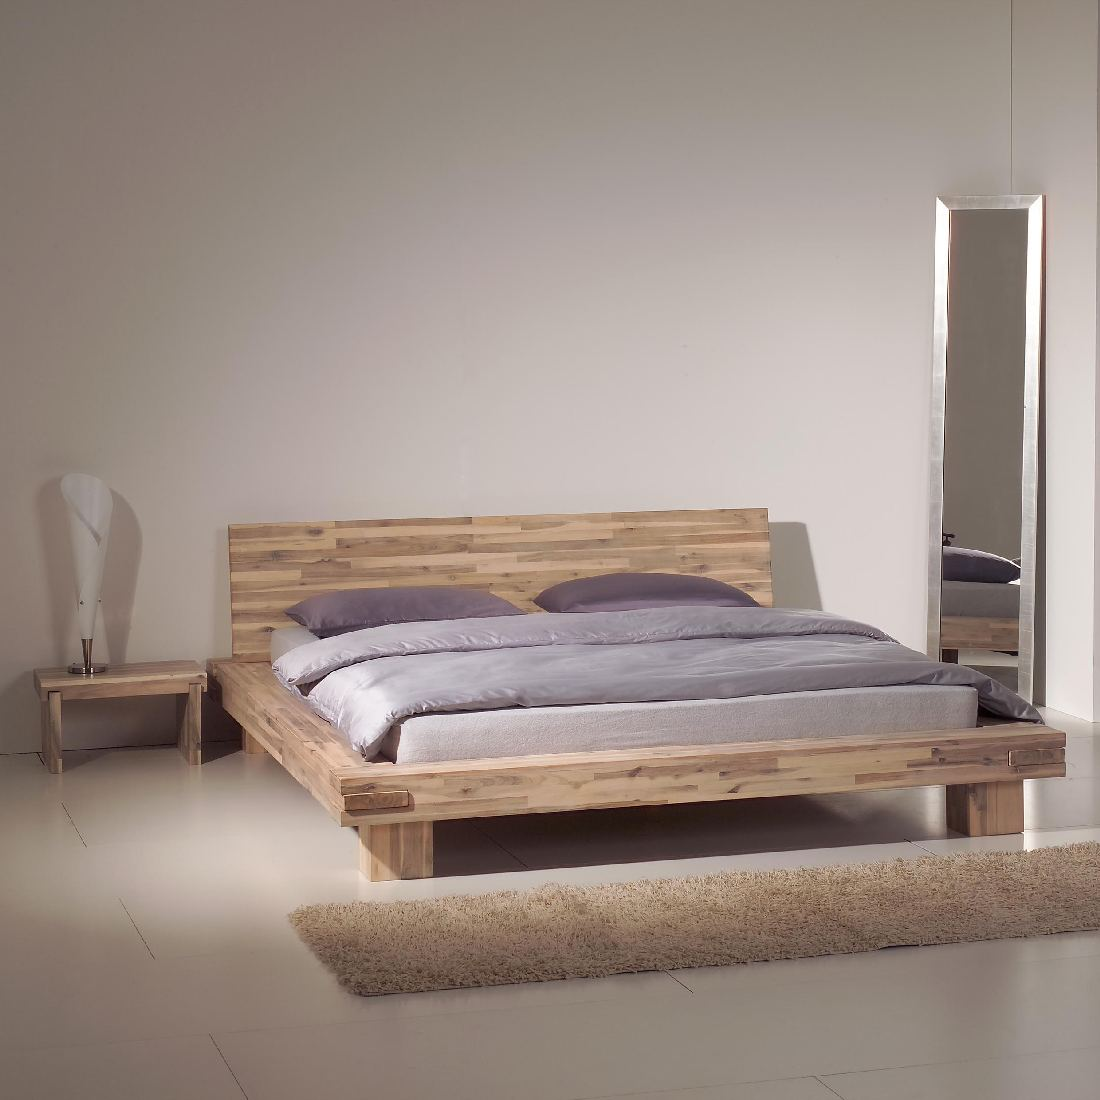 holzbett akazie massivholz 160x200 doppelbett futonbett bettgestell bett neu ebay. Black Bedroom Furniture Sets. Home Design Ideas